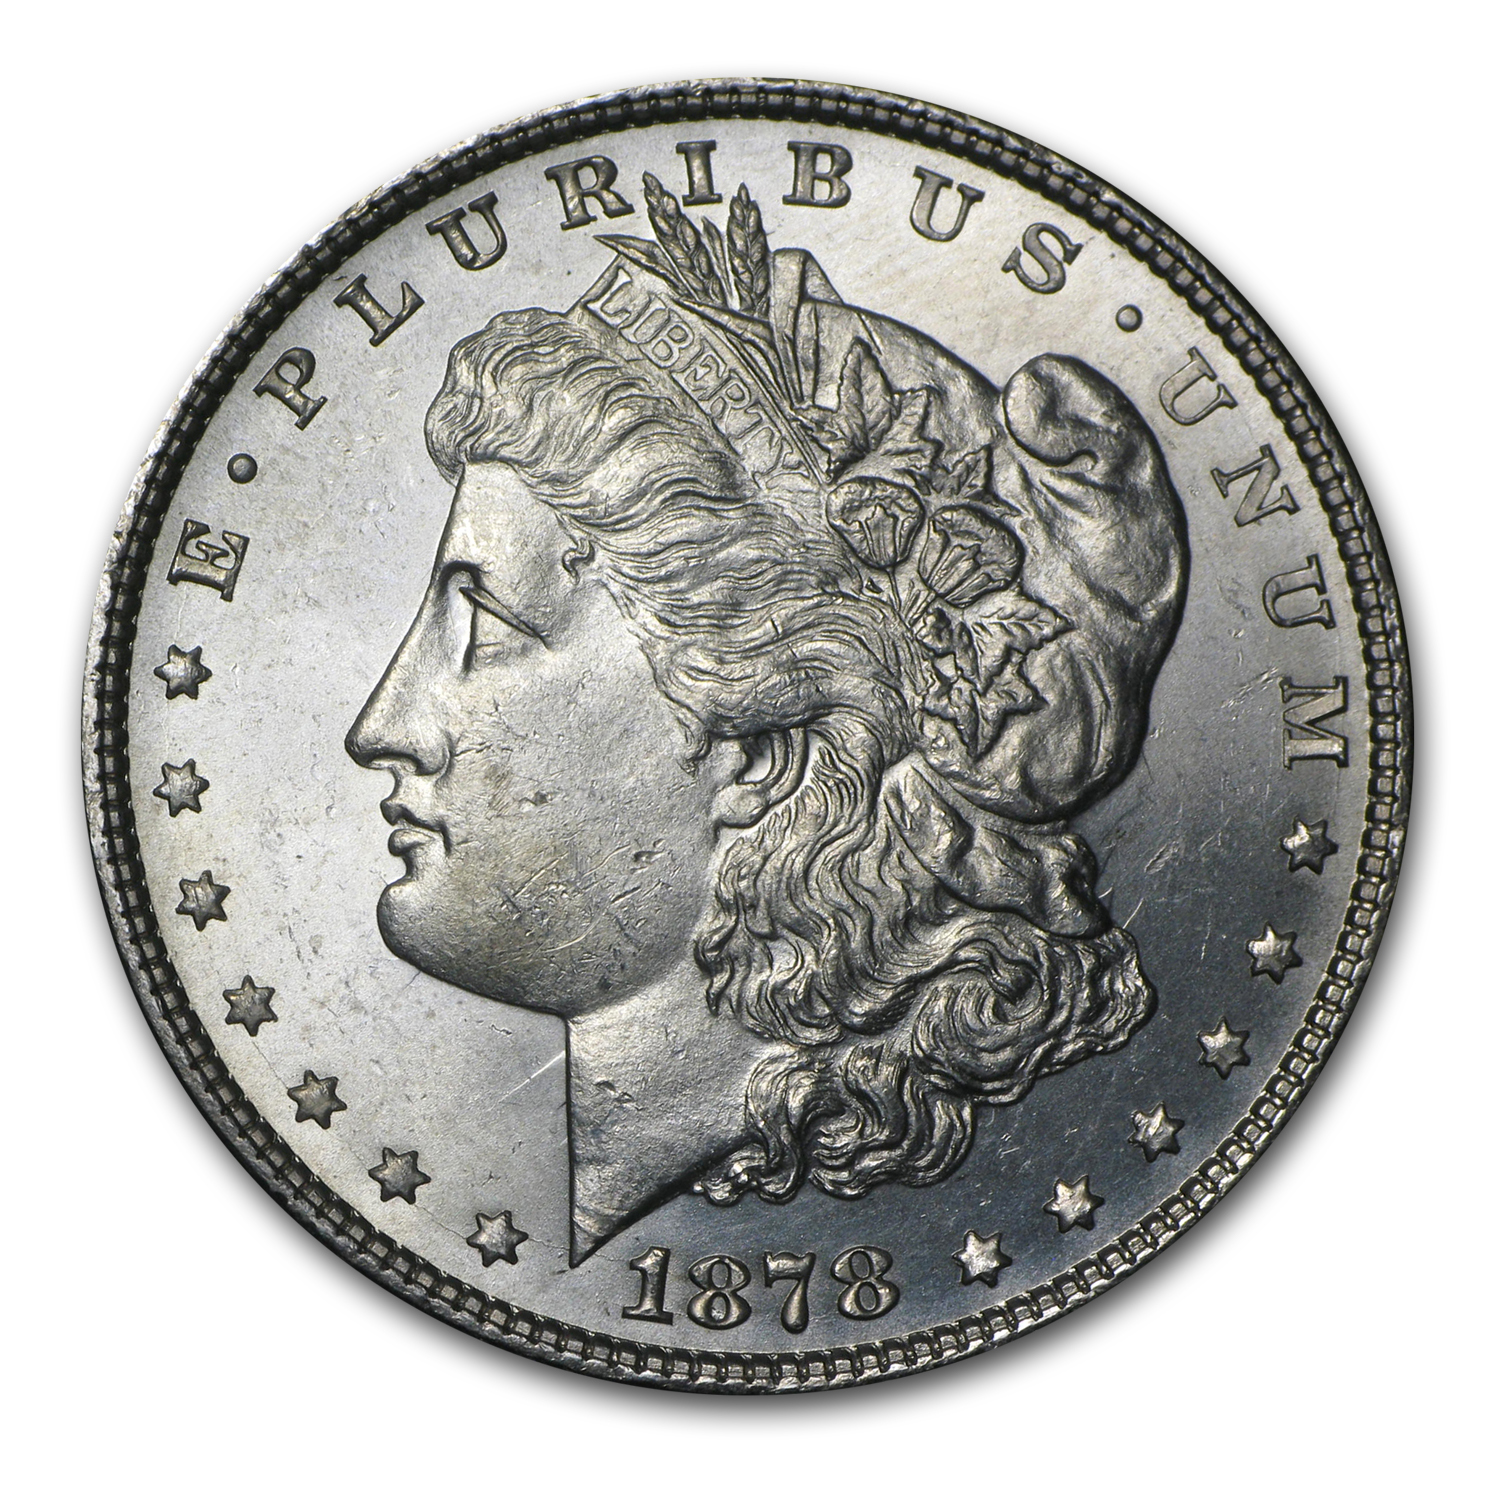 1878 Morgan Dollar 7/8 TF BU (Strong)